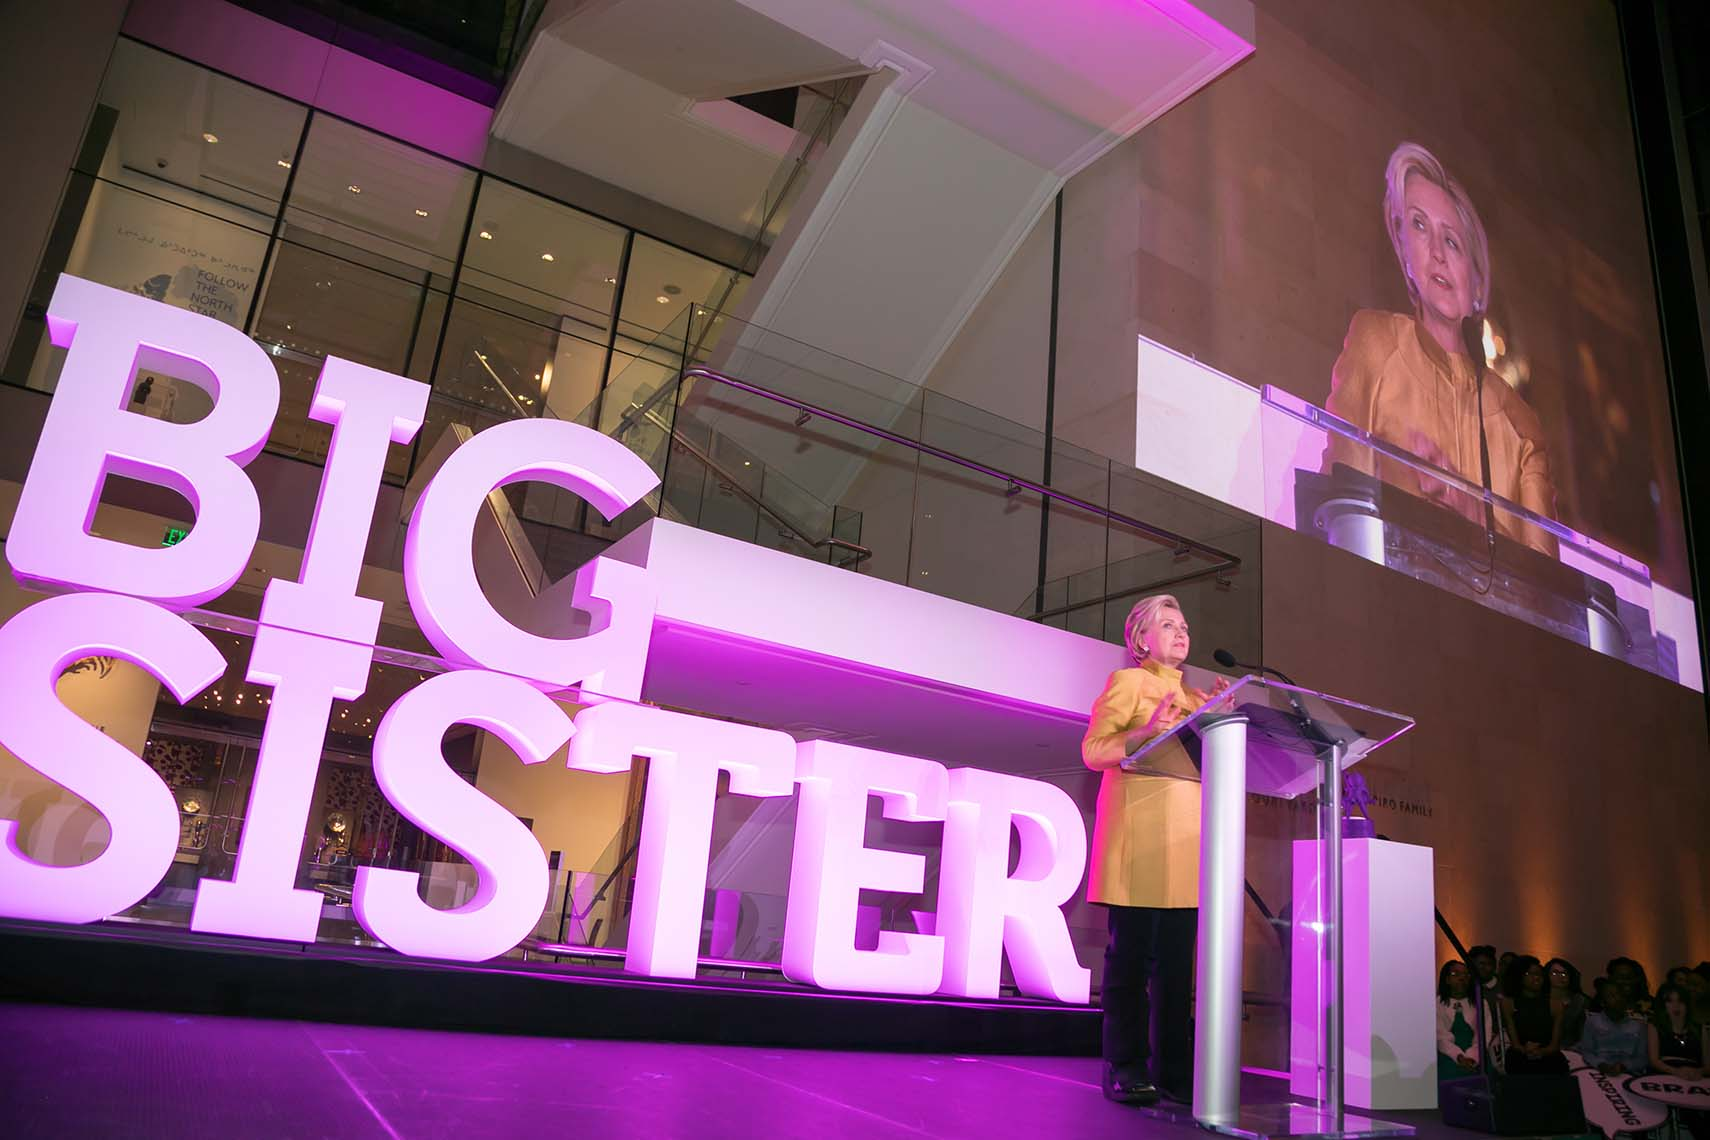 Hillary Clinton on stage at the Big Sister Gala in Boston